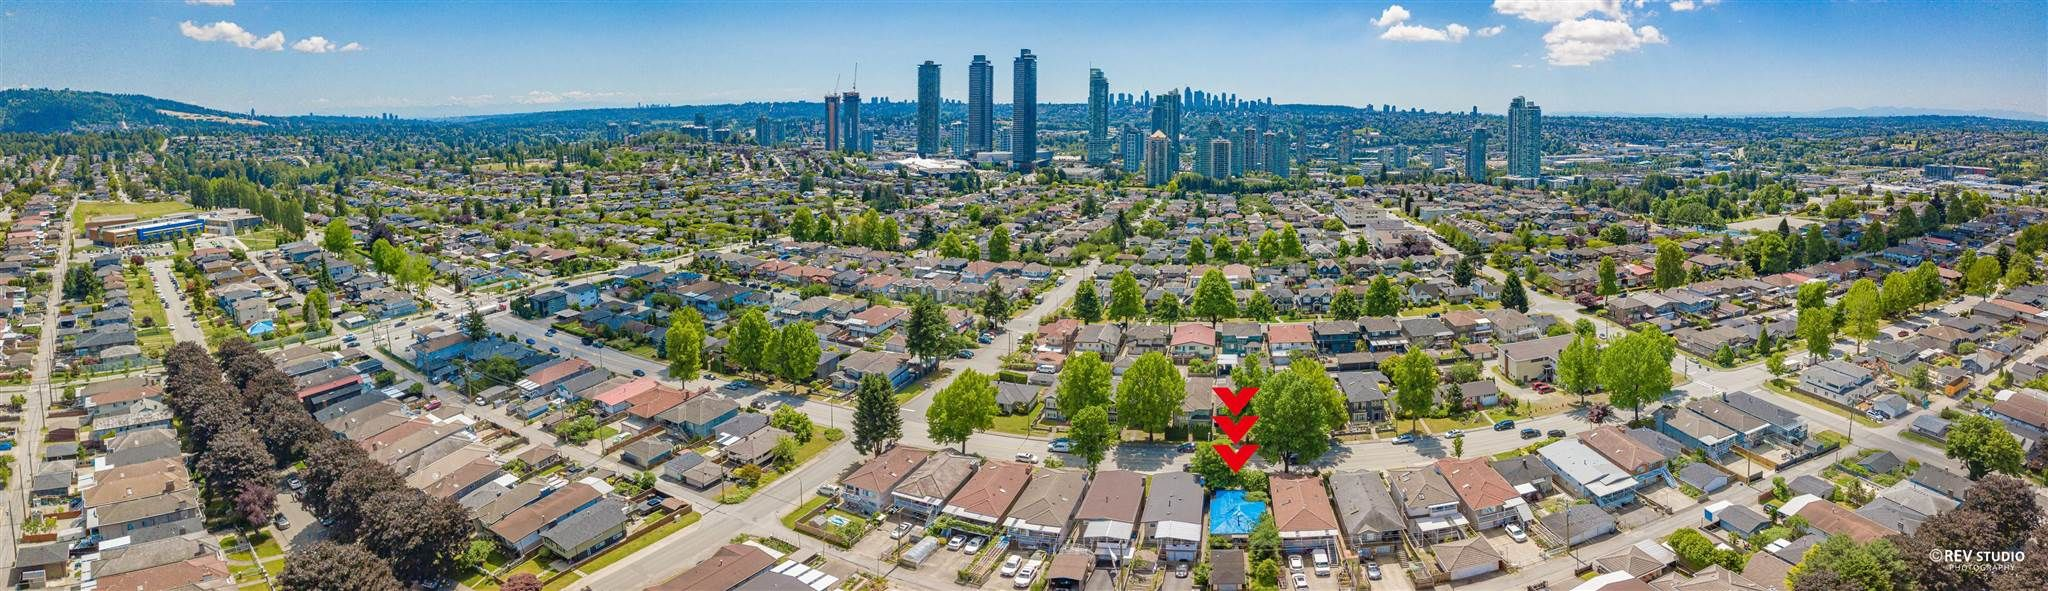 Main Photo: 4359 PARKER Street in Burnaby: Willingdon Heights House for sale (Burnaby North)  : MLS®# R2596231